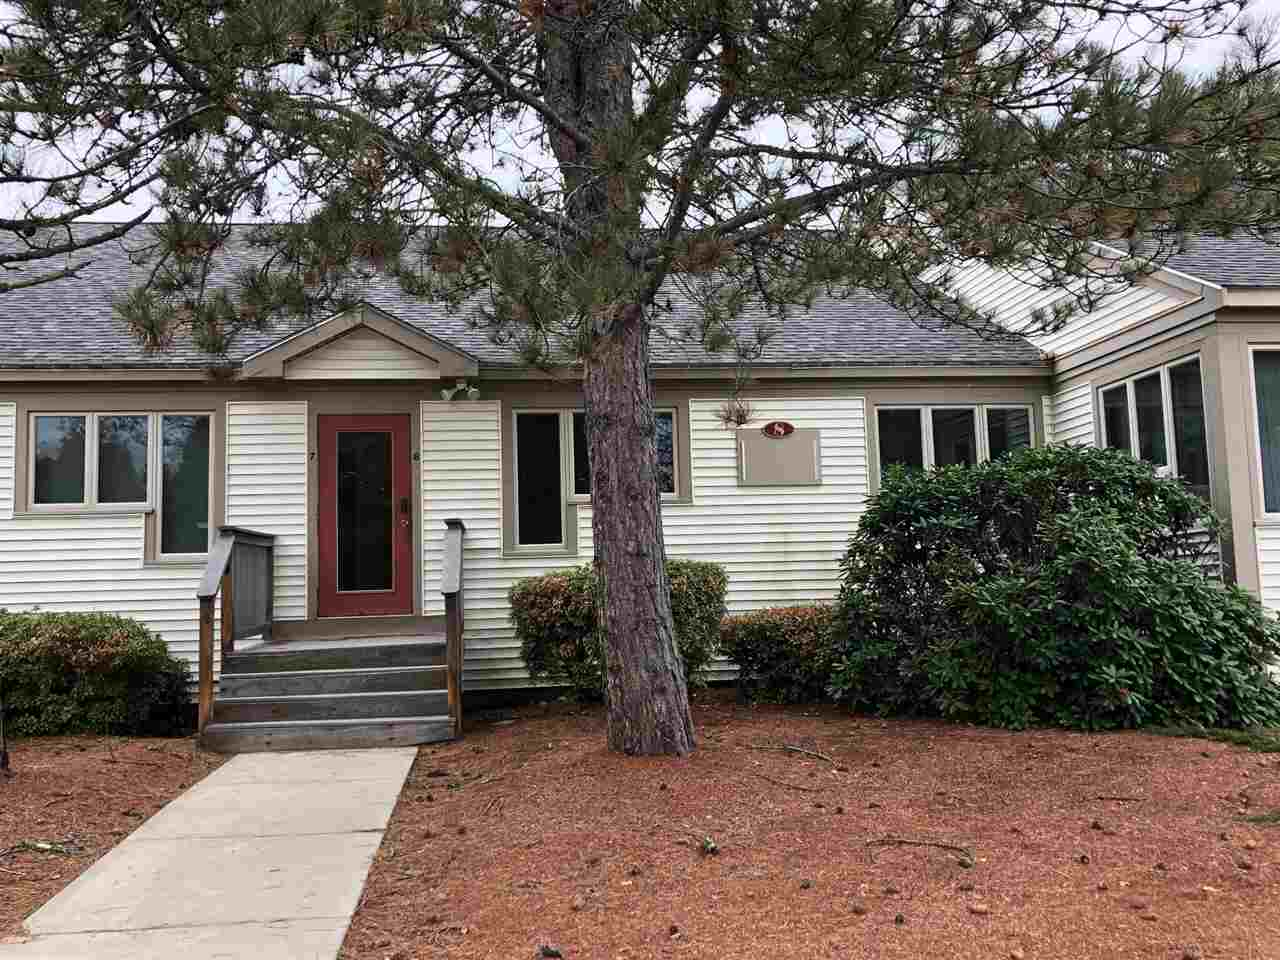 MLS 4784007: 5 Northern Boulevard-Unit 8, Amherst NH